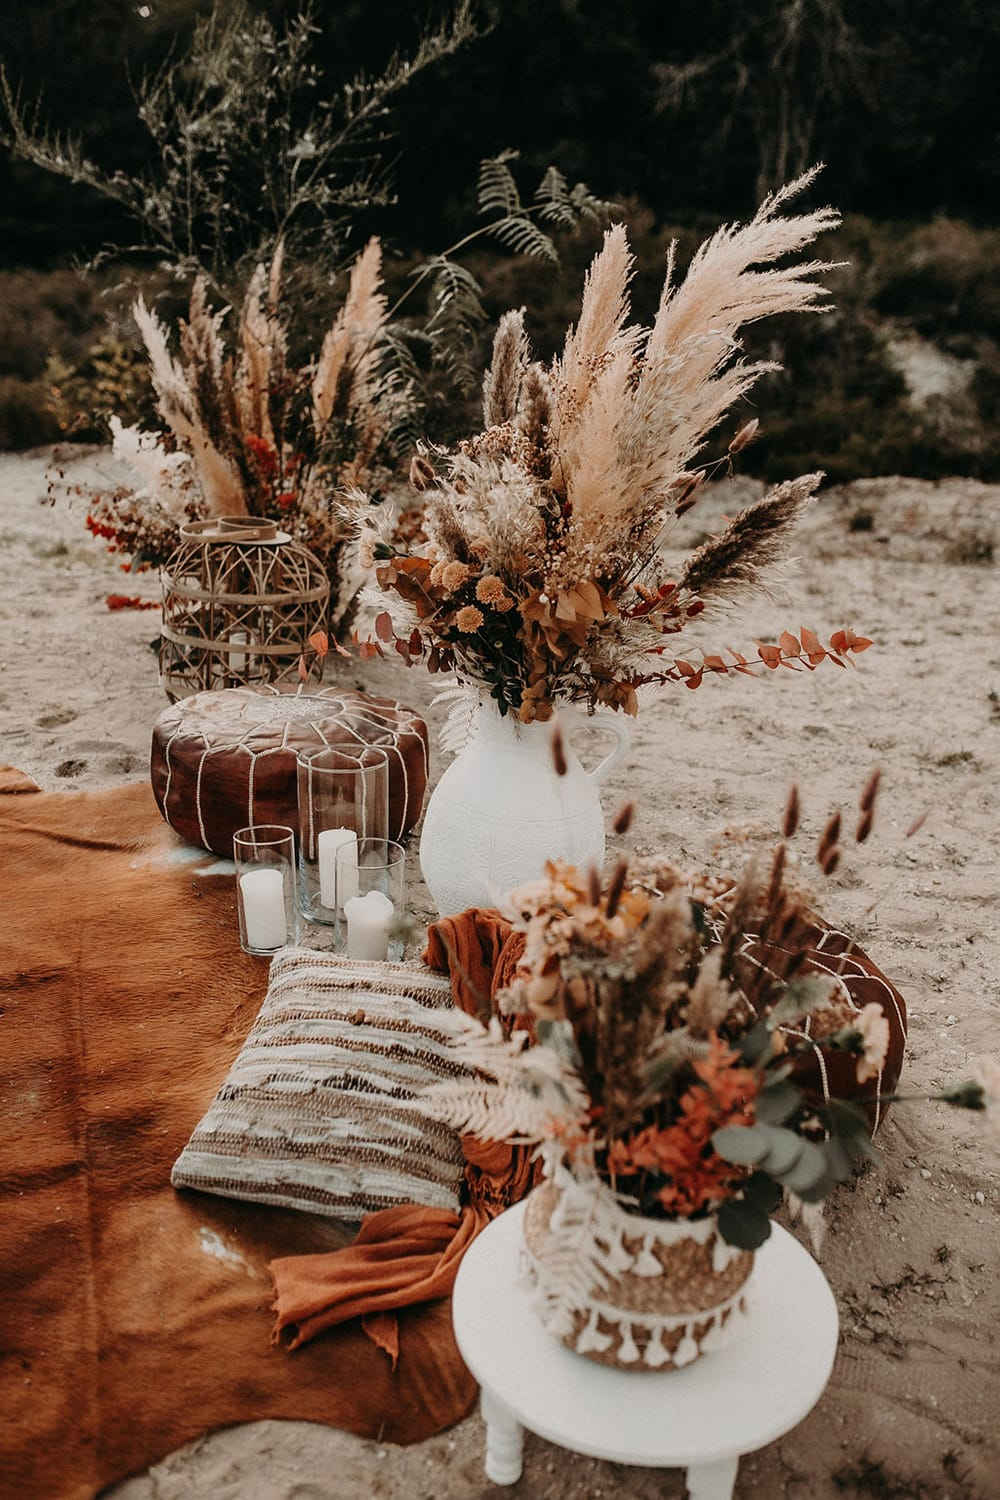 Boho Rust & White Wedding Ideas | Create a relaxed outdoor wedding seating area with a rust coloured rug, scattered floor cushions, white pillar candles in glass hurricane vases, large bamboo lantern, white low set table and earthy dried flower arrangements in eclectic vessels featuring wild pampas grass. | Photography: Mel Ende Photography